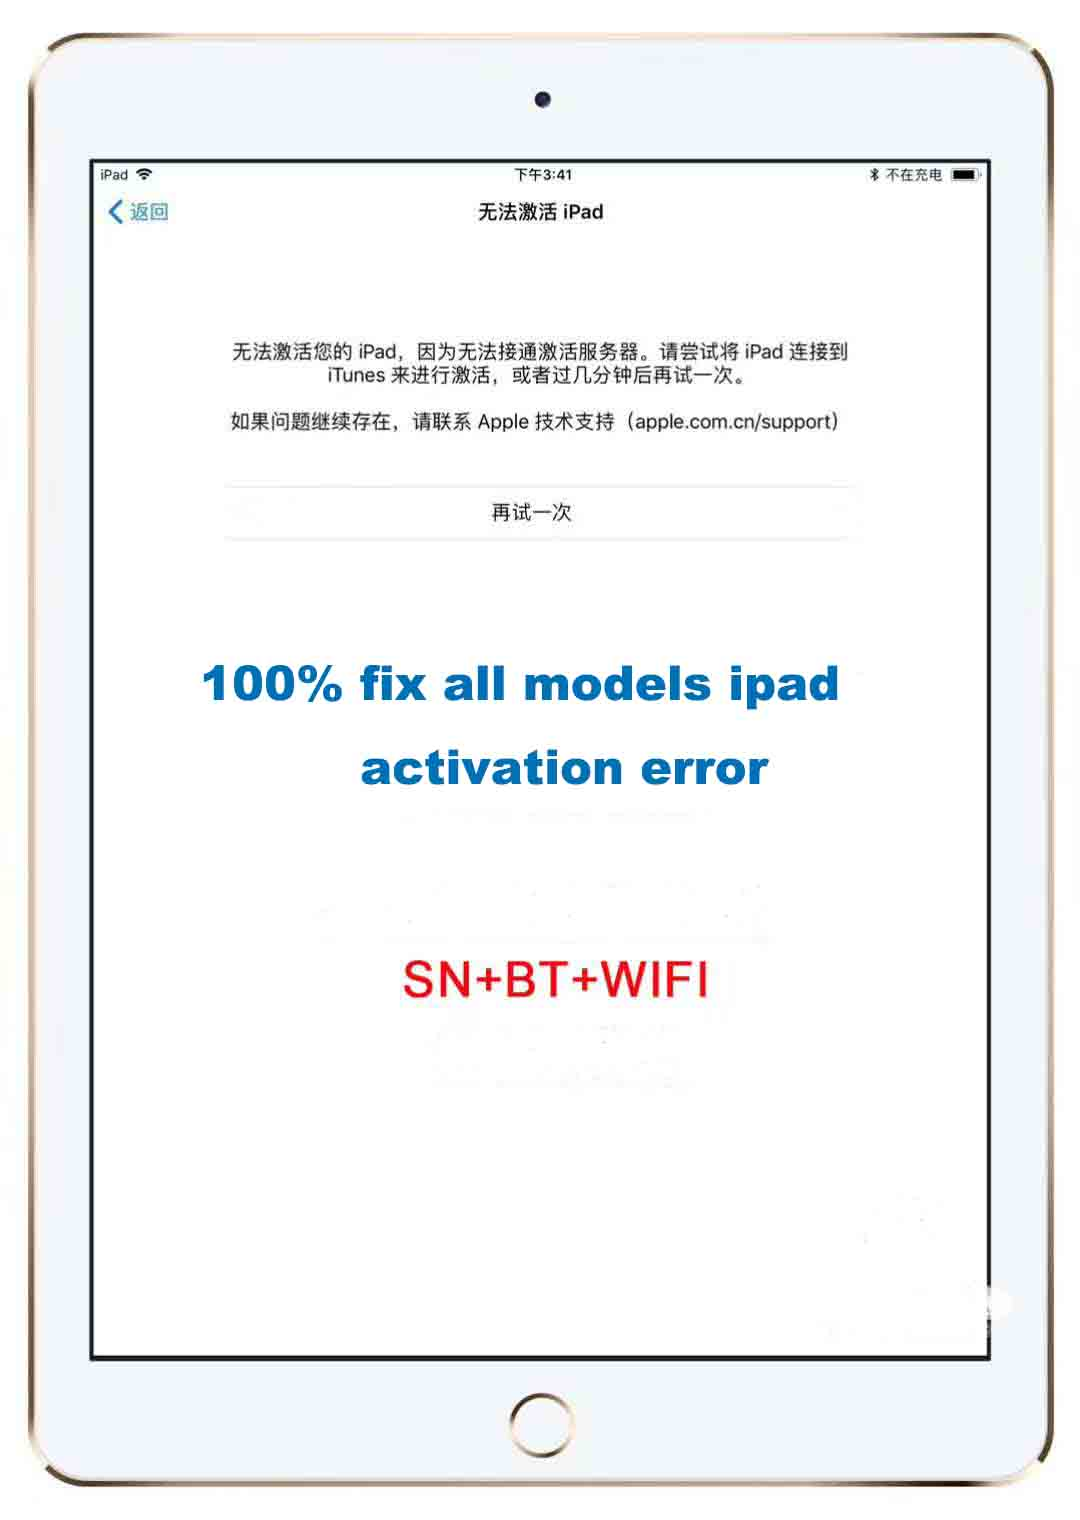 For Unlocked SN Serial Number For IPad Mini 1234 Air12 Pro Serial Number WiFi Bluetooth Address For IPad Icloud Unlock